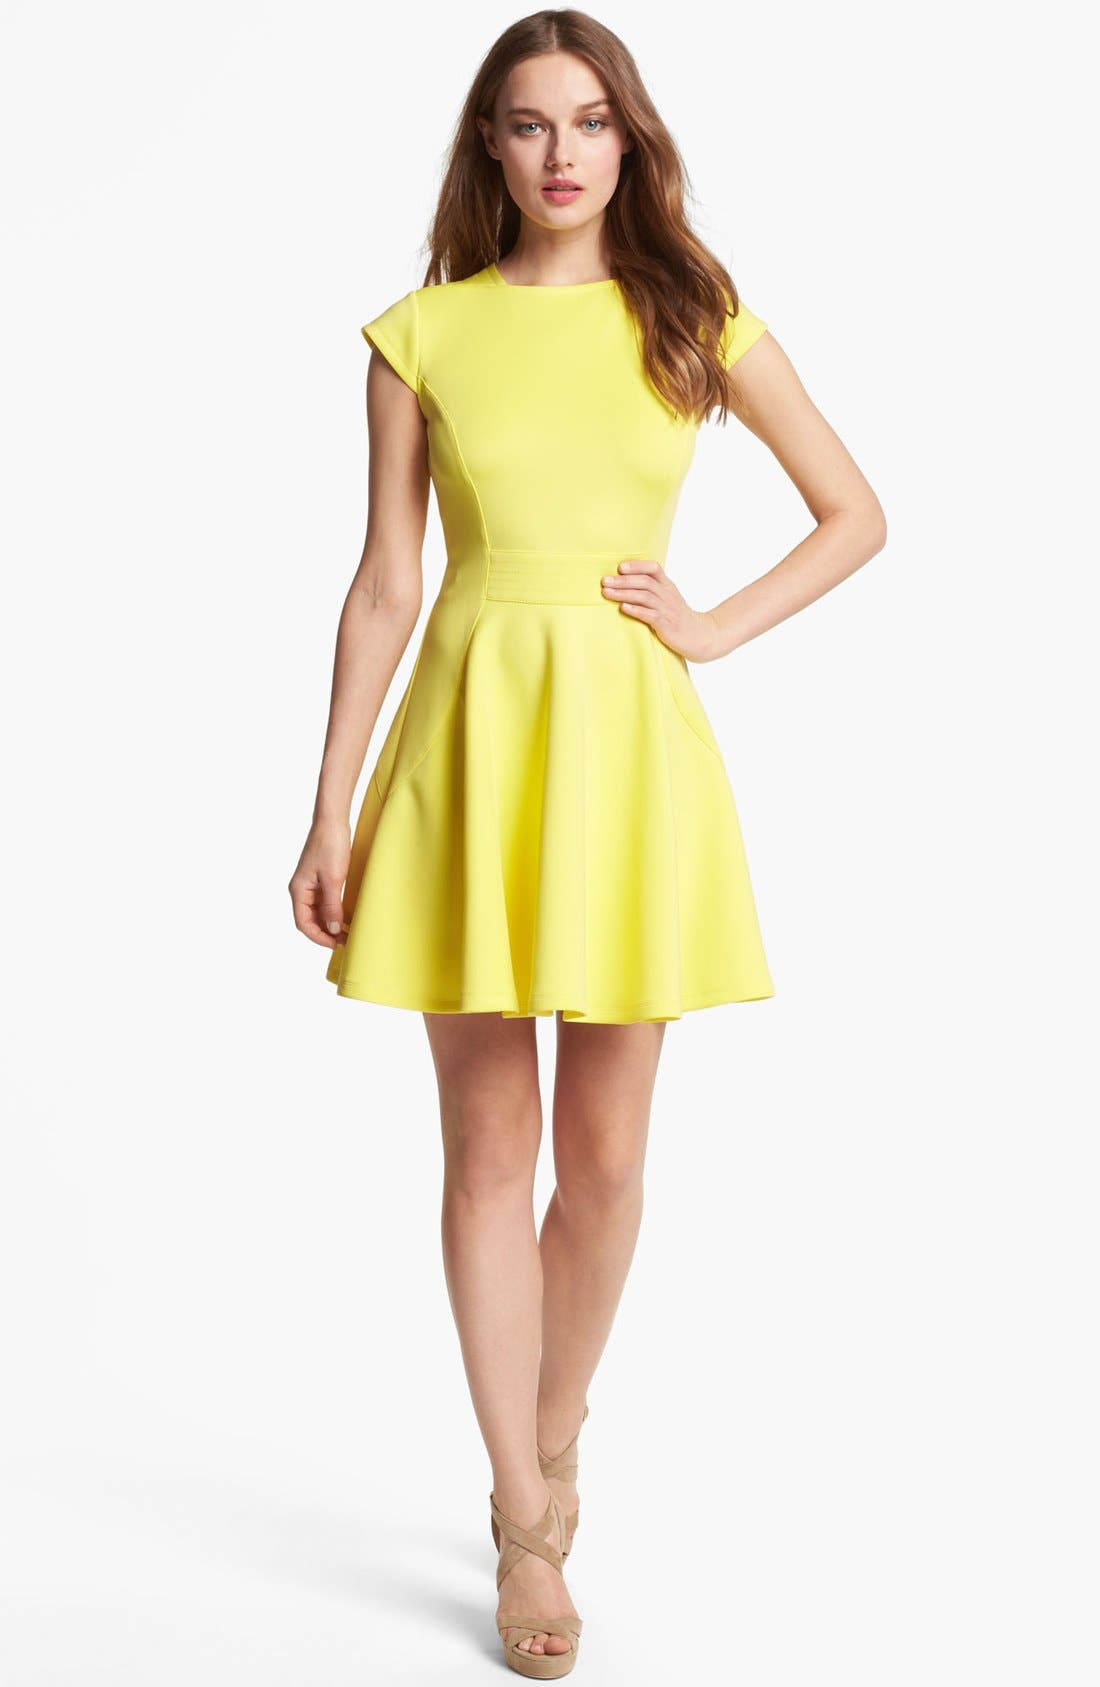 Main Image - Ted Baker London Stretch Fit & Flare Dress